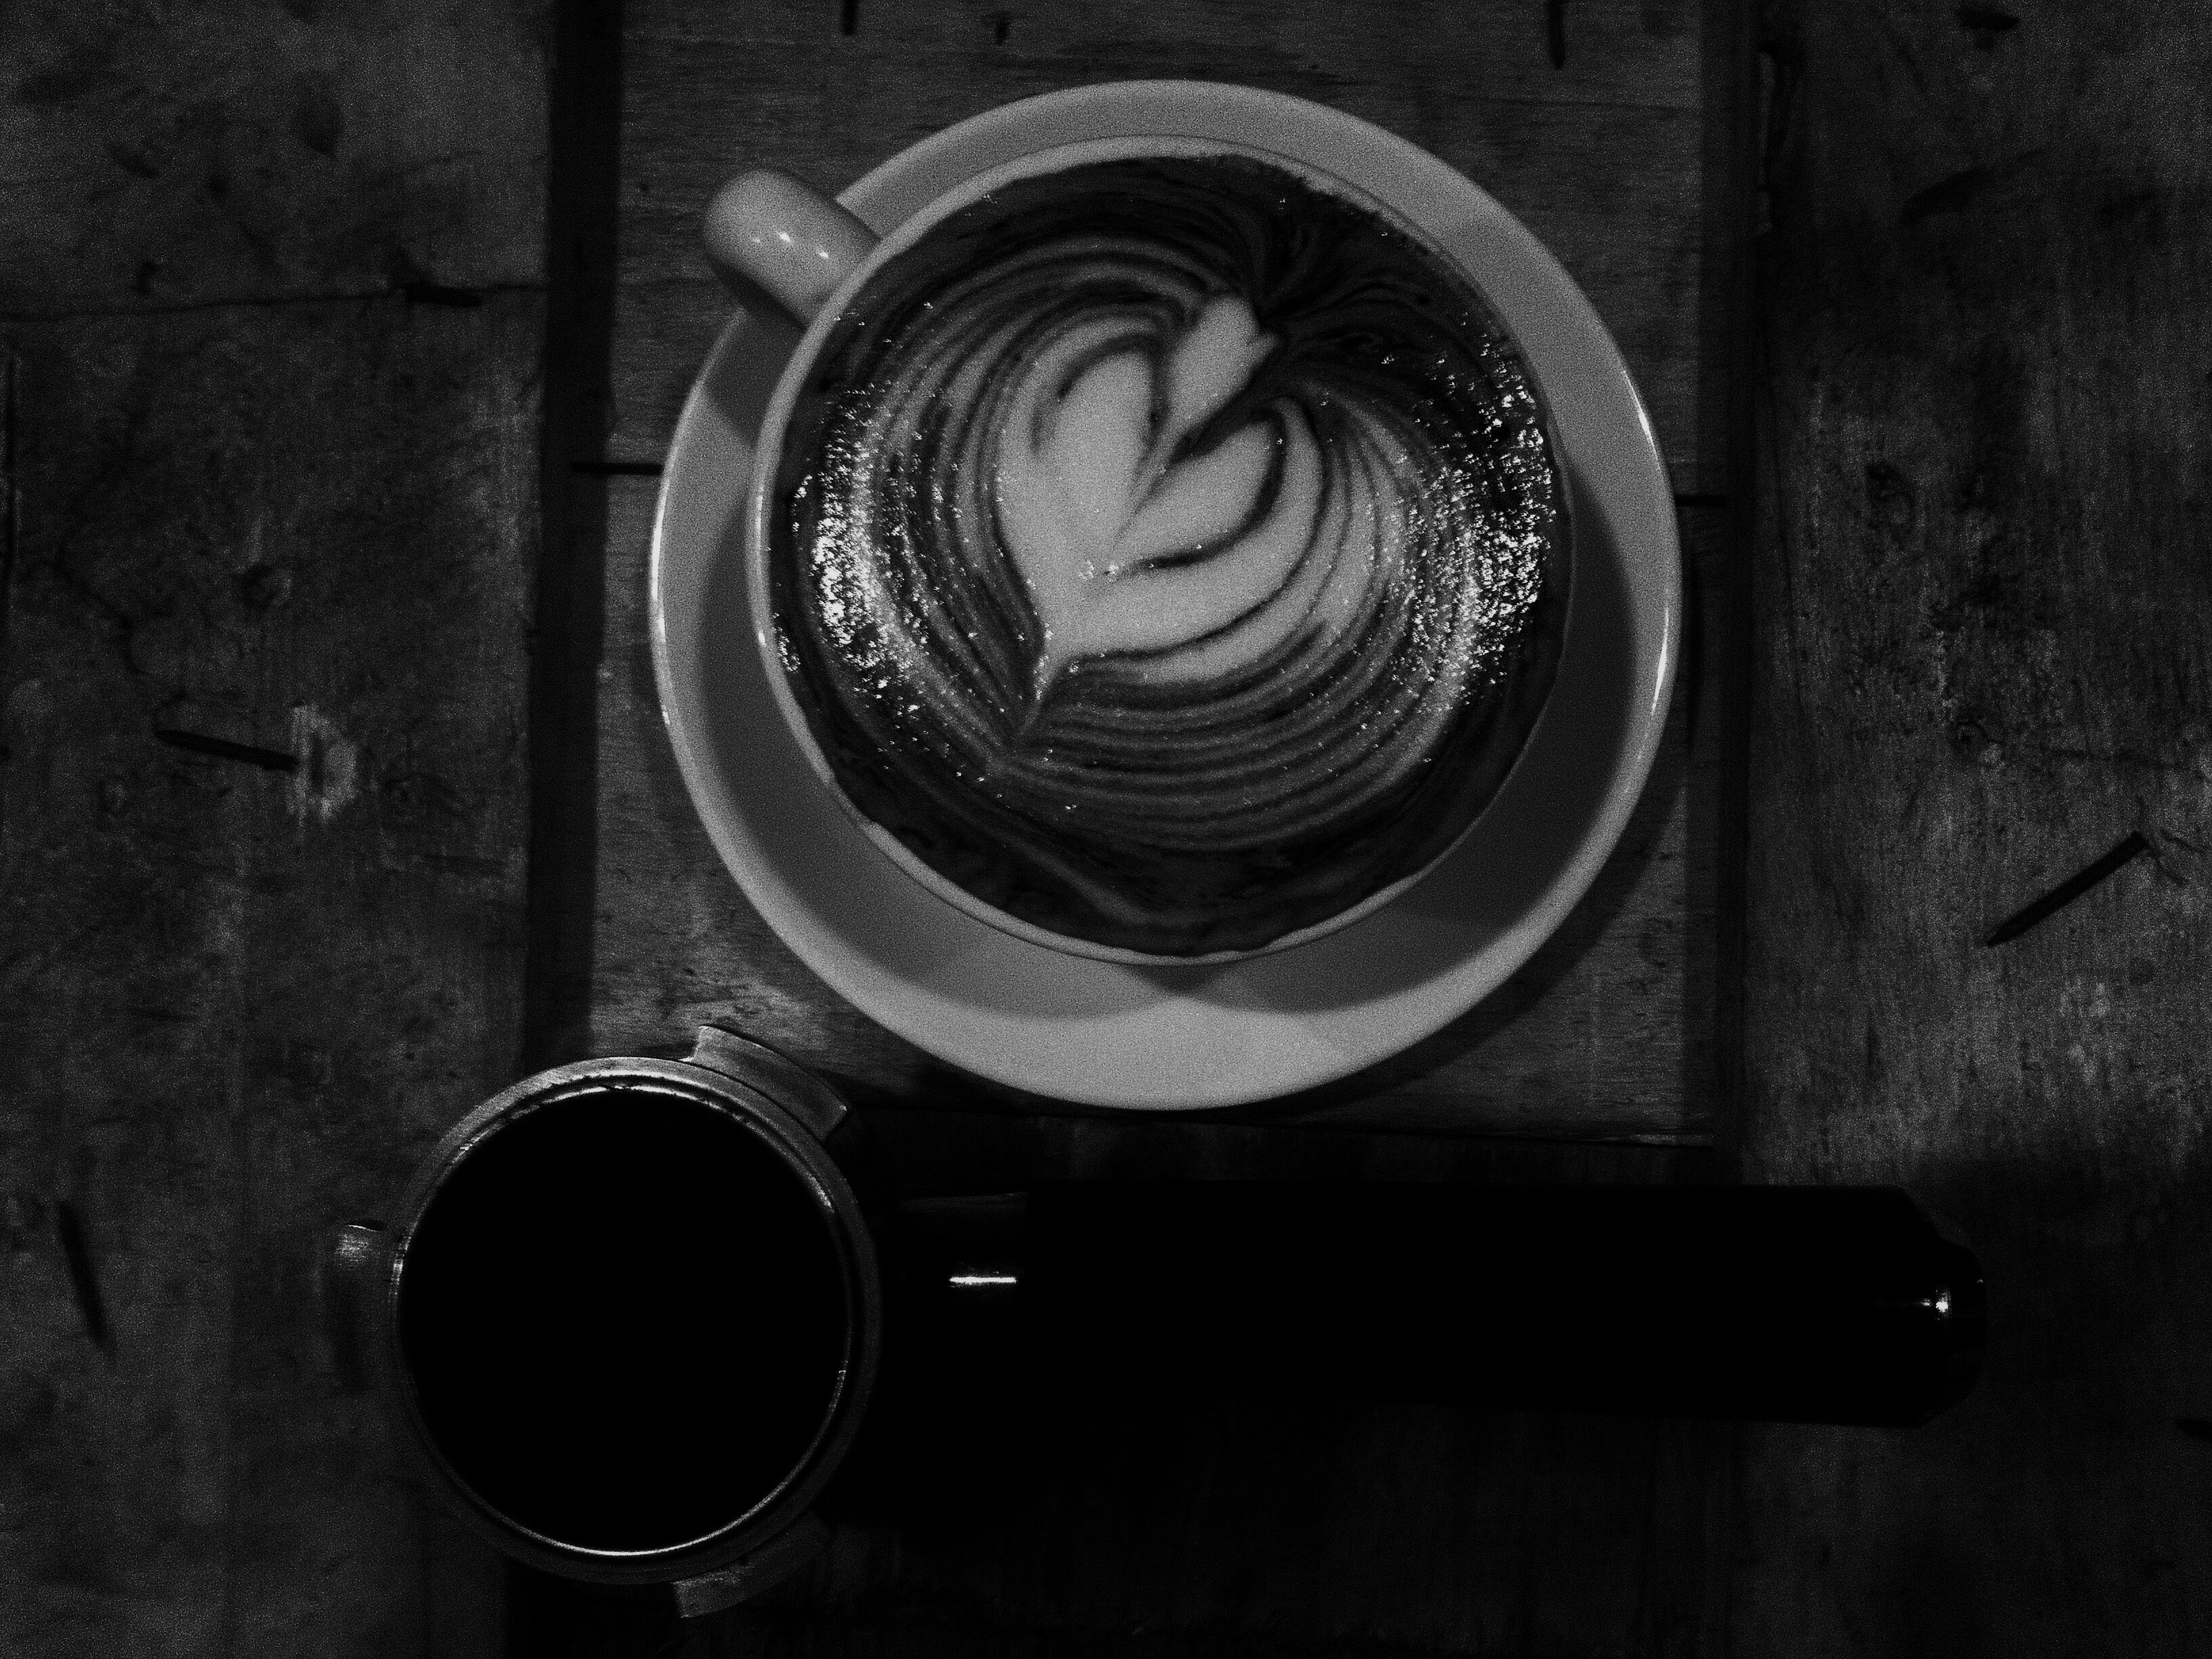 indoors, still life, close-up, table, coffee cup, directly above, high angle view, coffee - drink, no people, art, circle, creativity, wood - material, overhead view, drink, single object, art and craft, refreshment, food and drink, metal